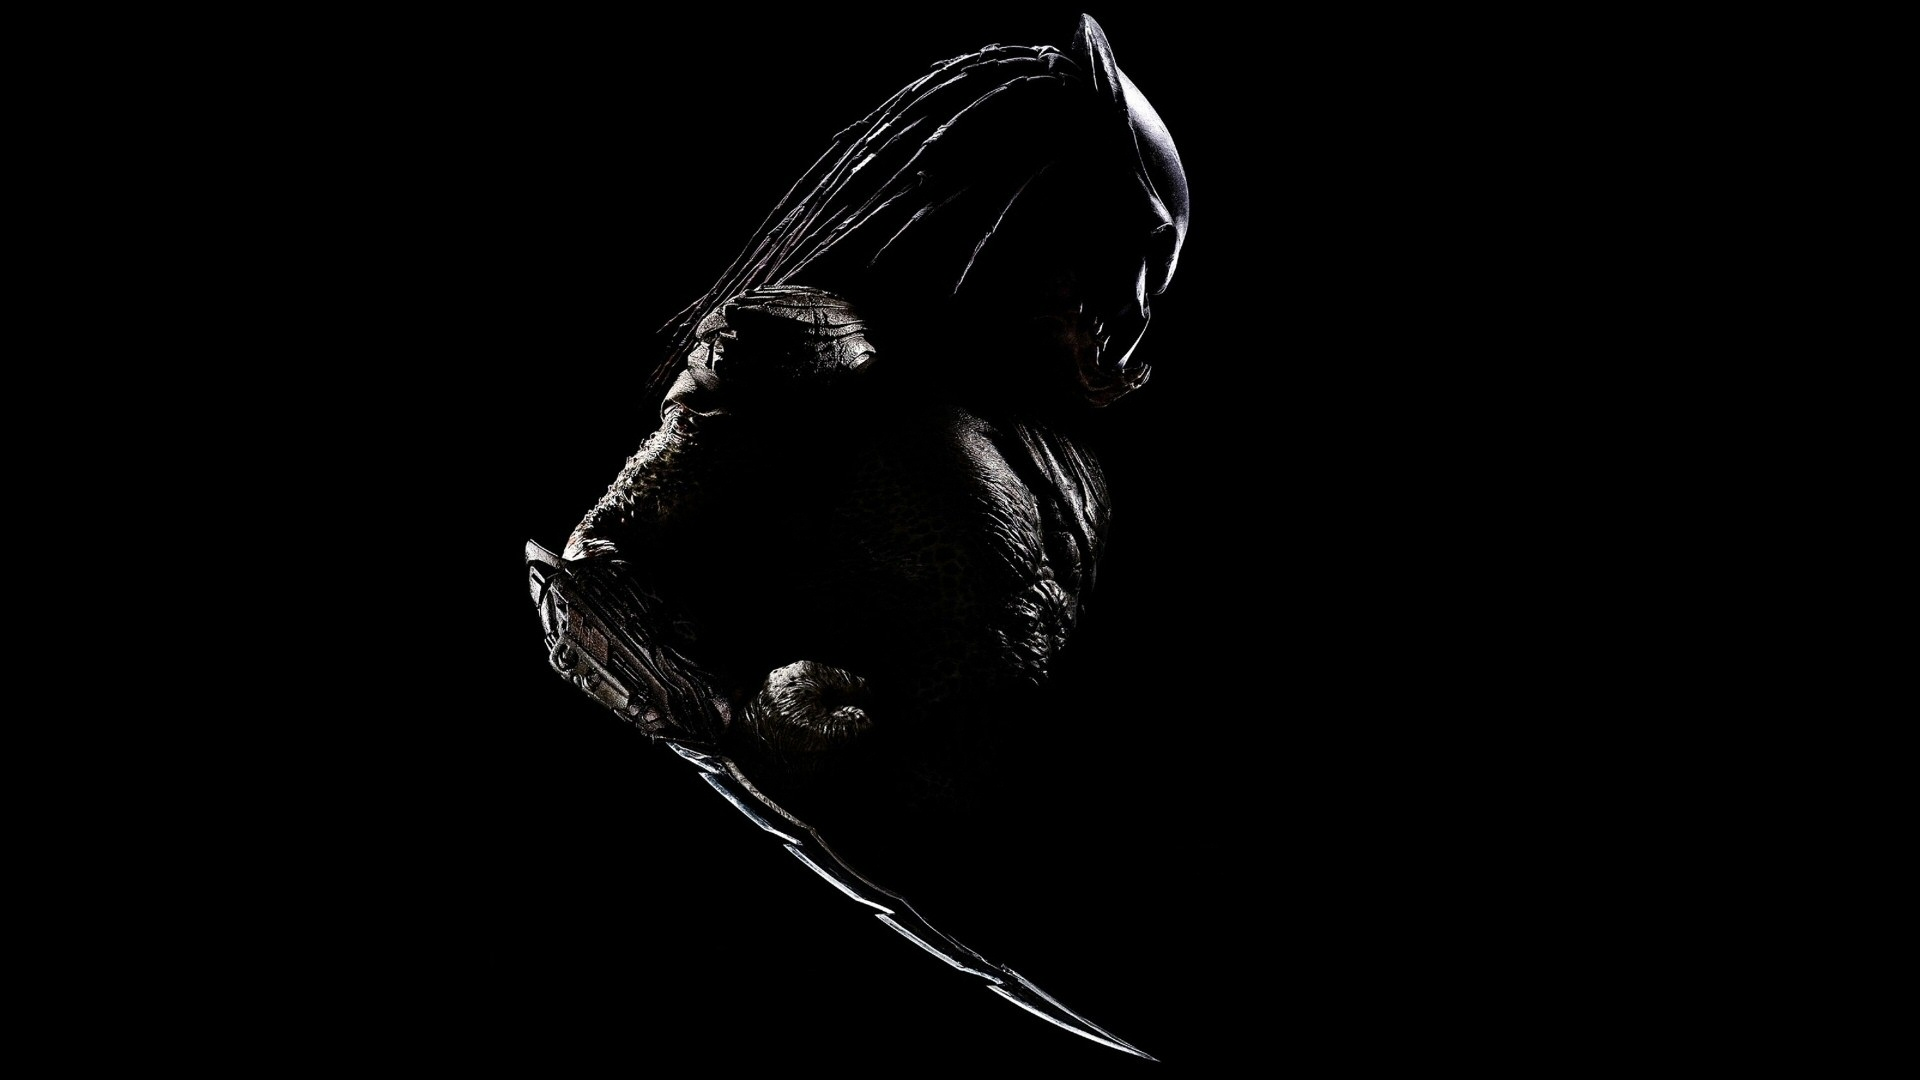 HD Black and White Wallpapers and Photos HD Movies 1920x1080